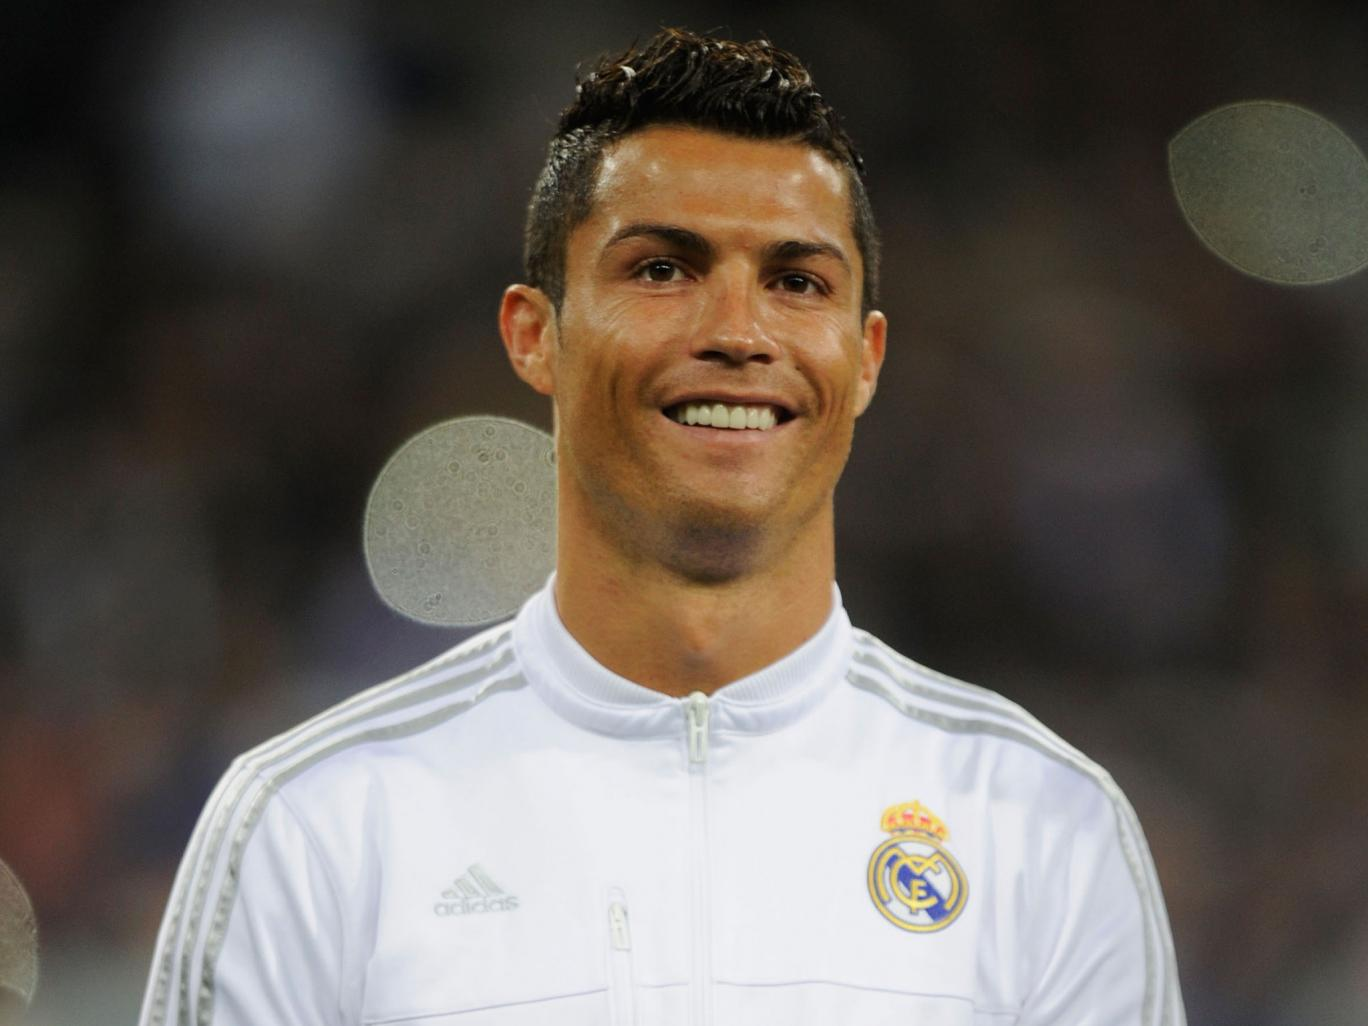 Cristiano Ronaldo | All the action from the casino floor: news, views and more